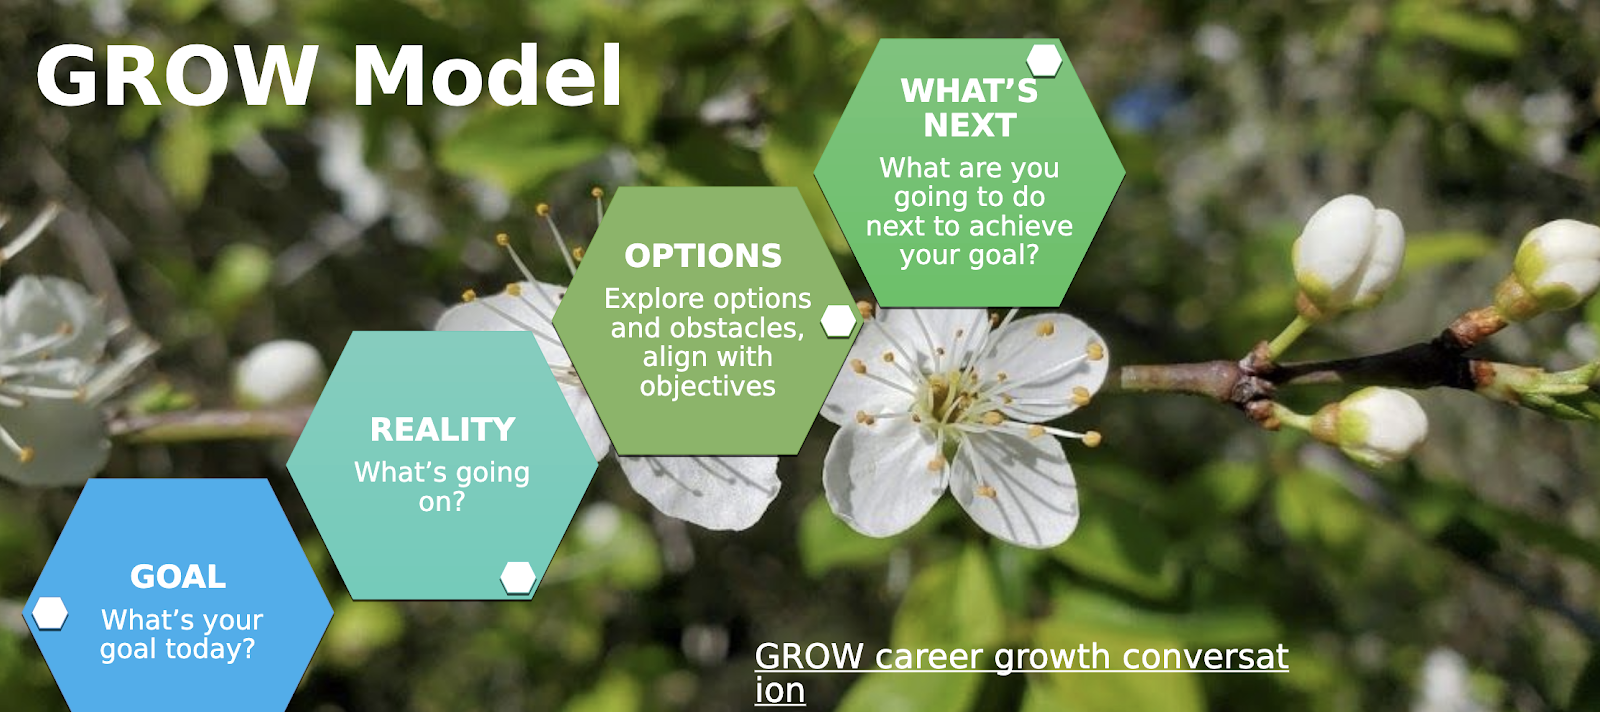 The growth model for a product marketer.